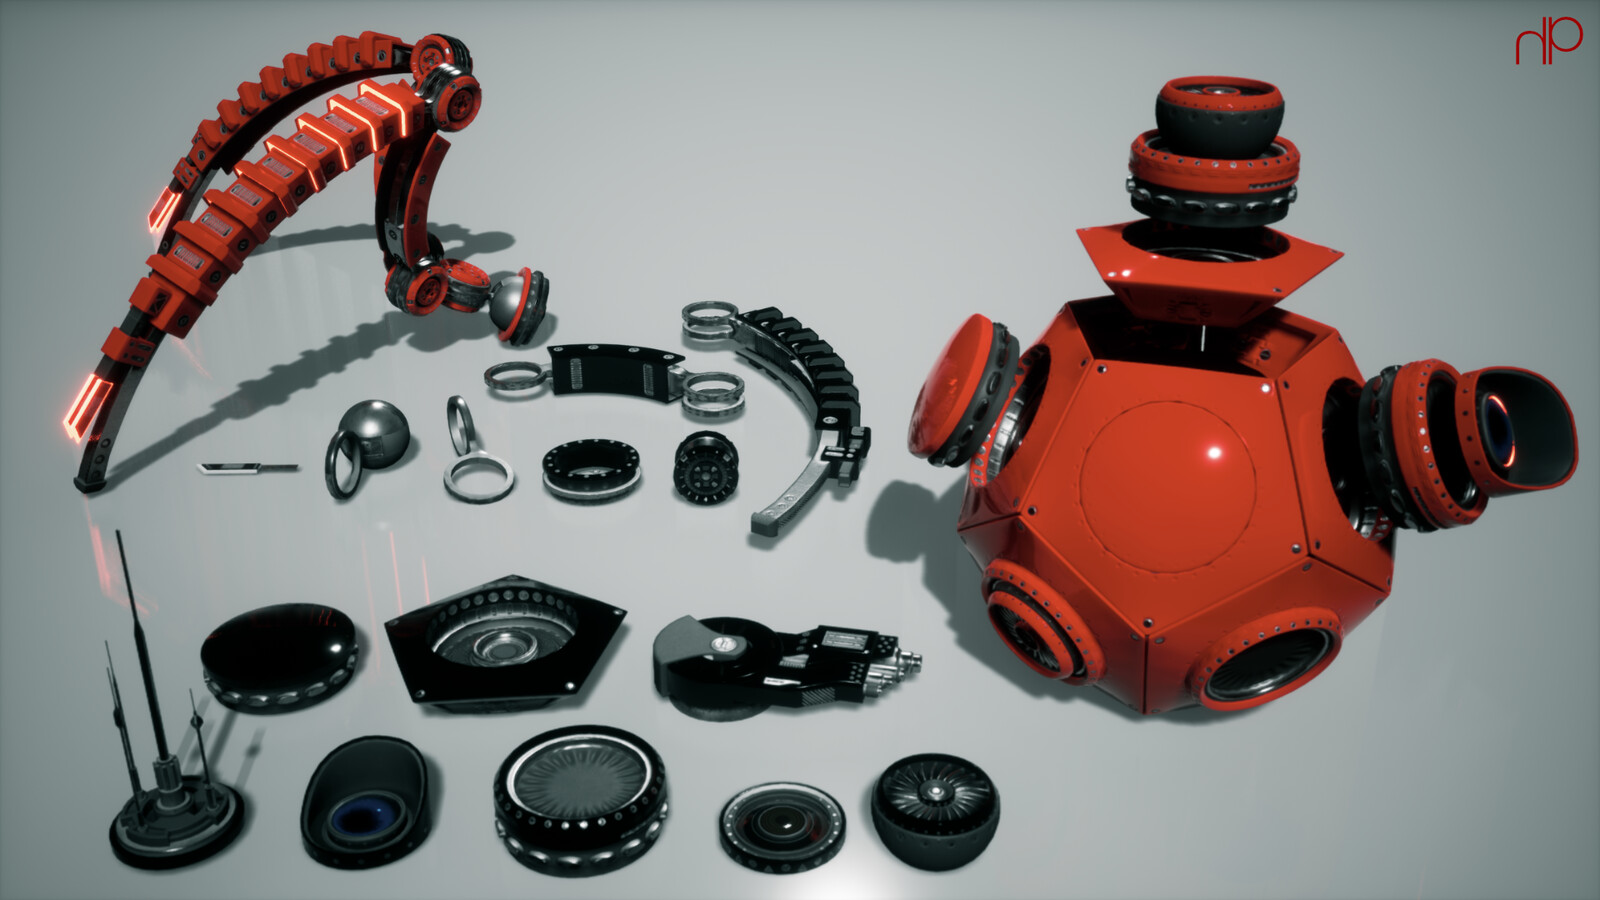 Modular asset kit coordinated with an HDA in Houdini Engine.